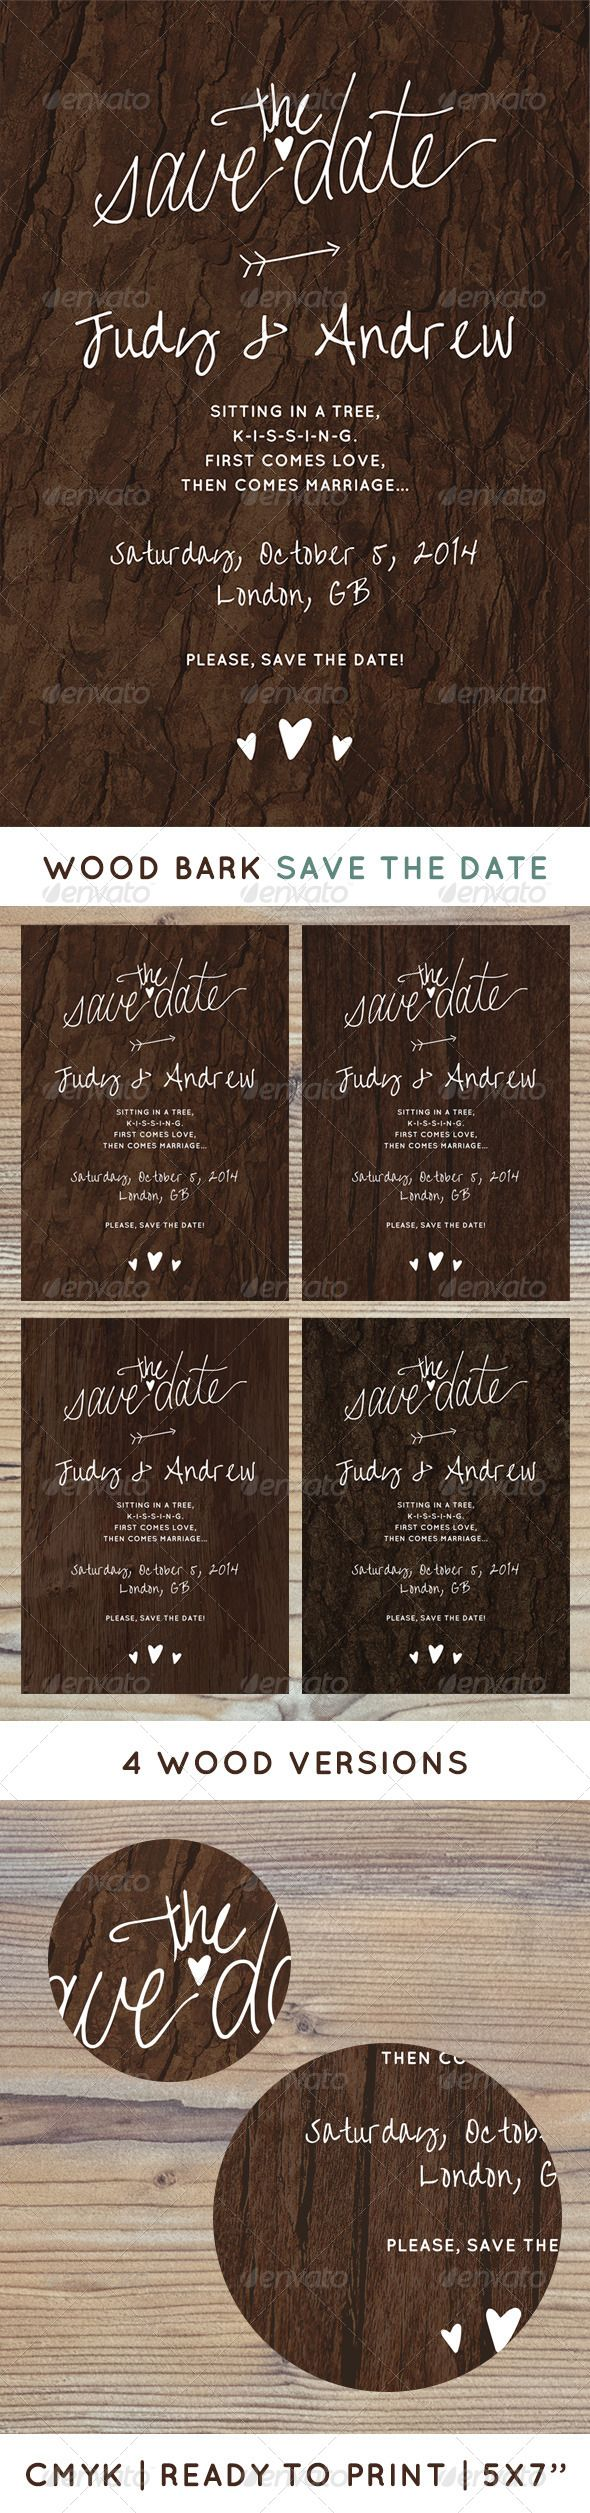 Printable, fully customisable wedding save the date design.  Romantic wedding Save The Date written on a tree.   - Ready to print  - CMYK, 5×7'' with 0.25 bleed  - 4 background versions  - 1 PSD file  - high quality